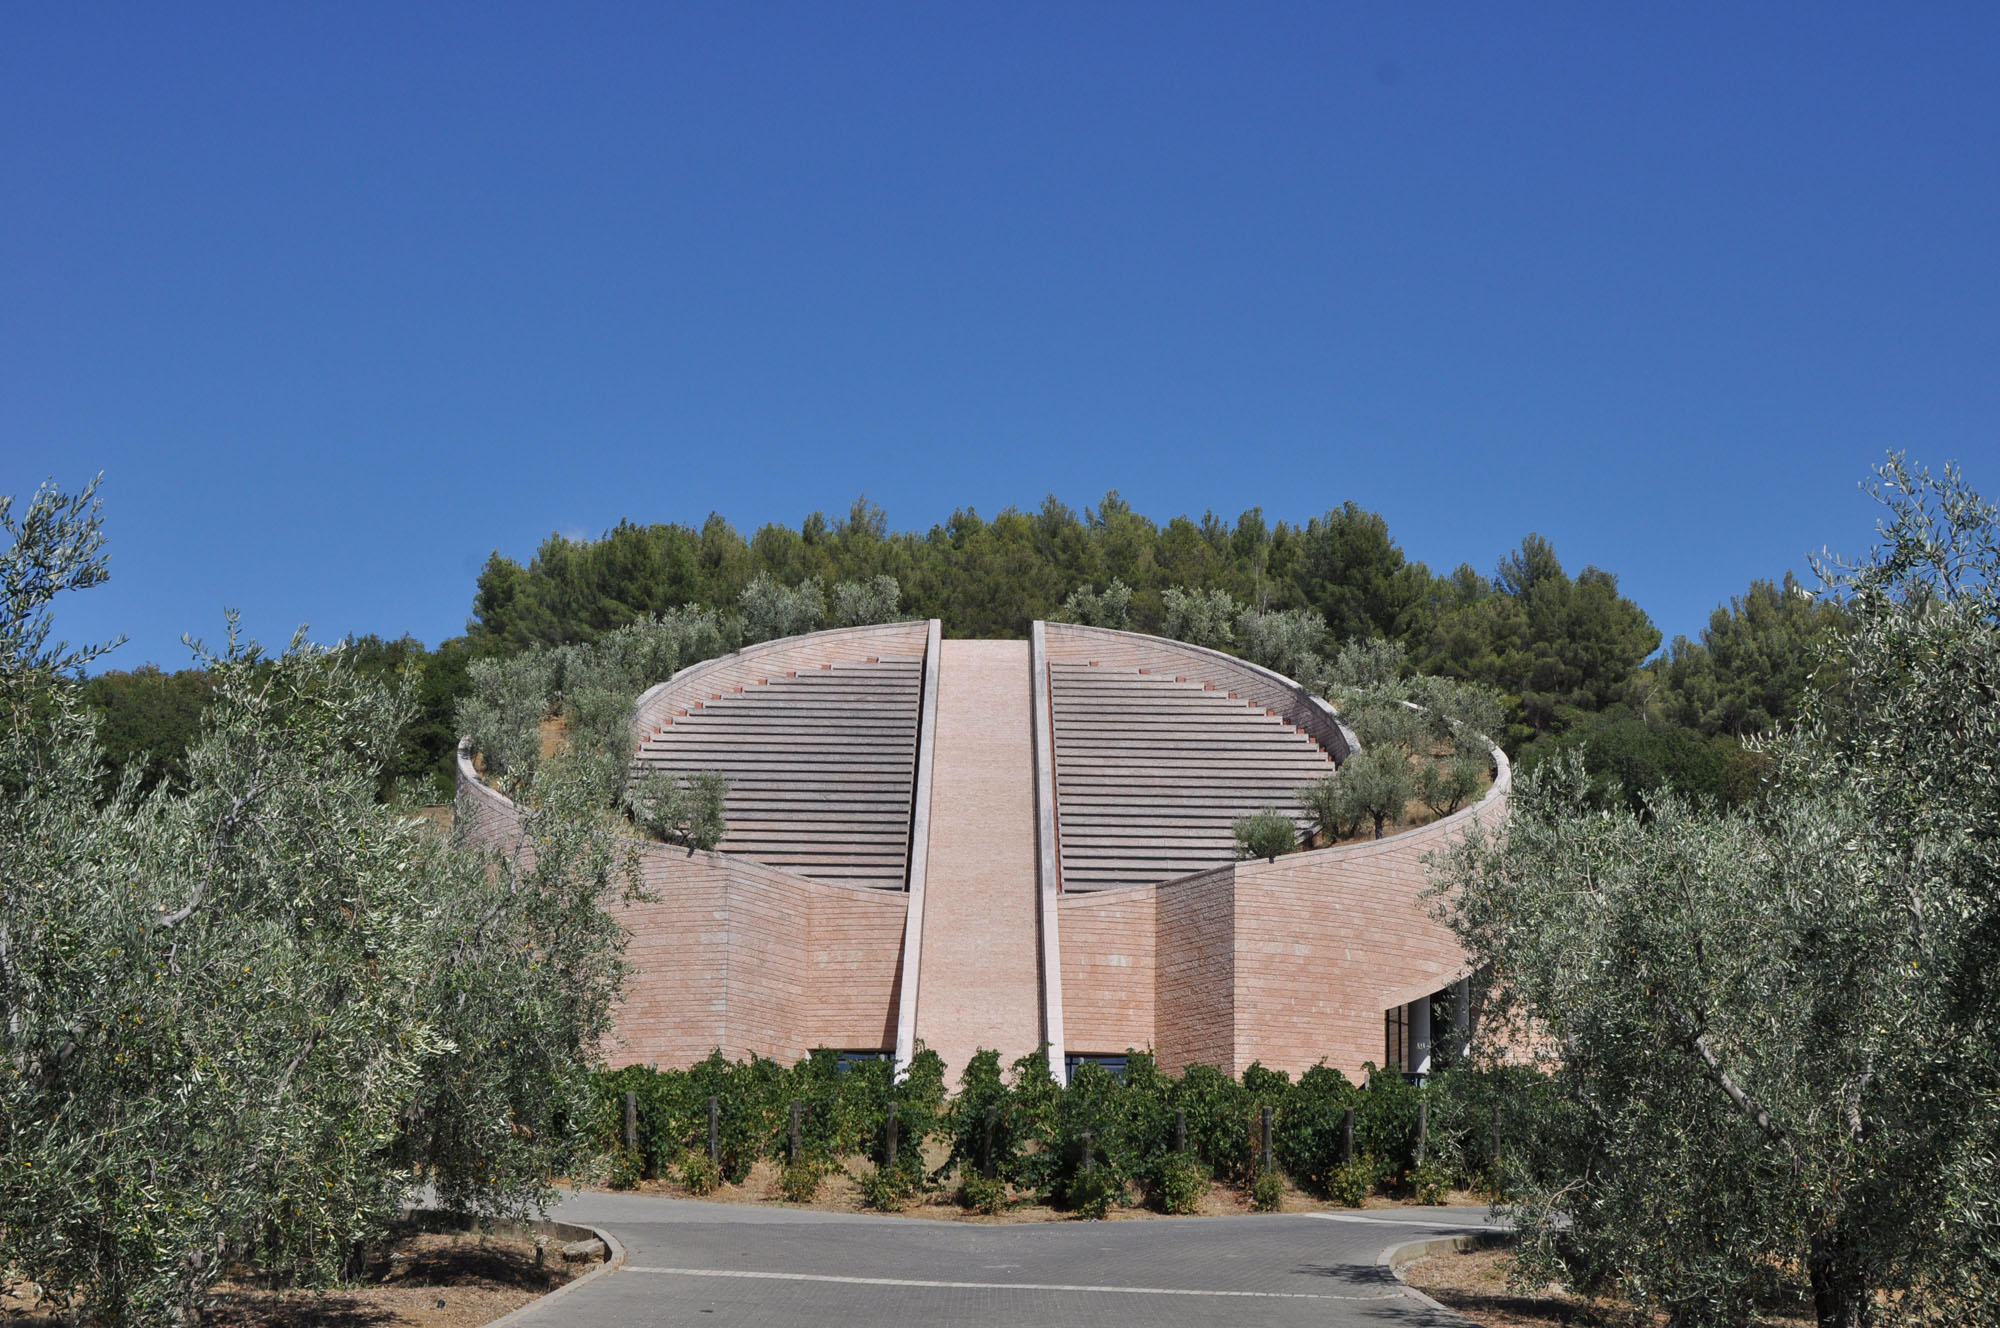 Petra, a winery in Maremma, was designed by architect Mario Botta